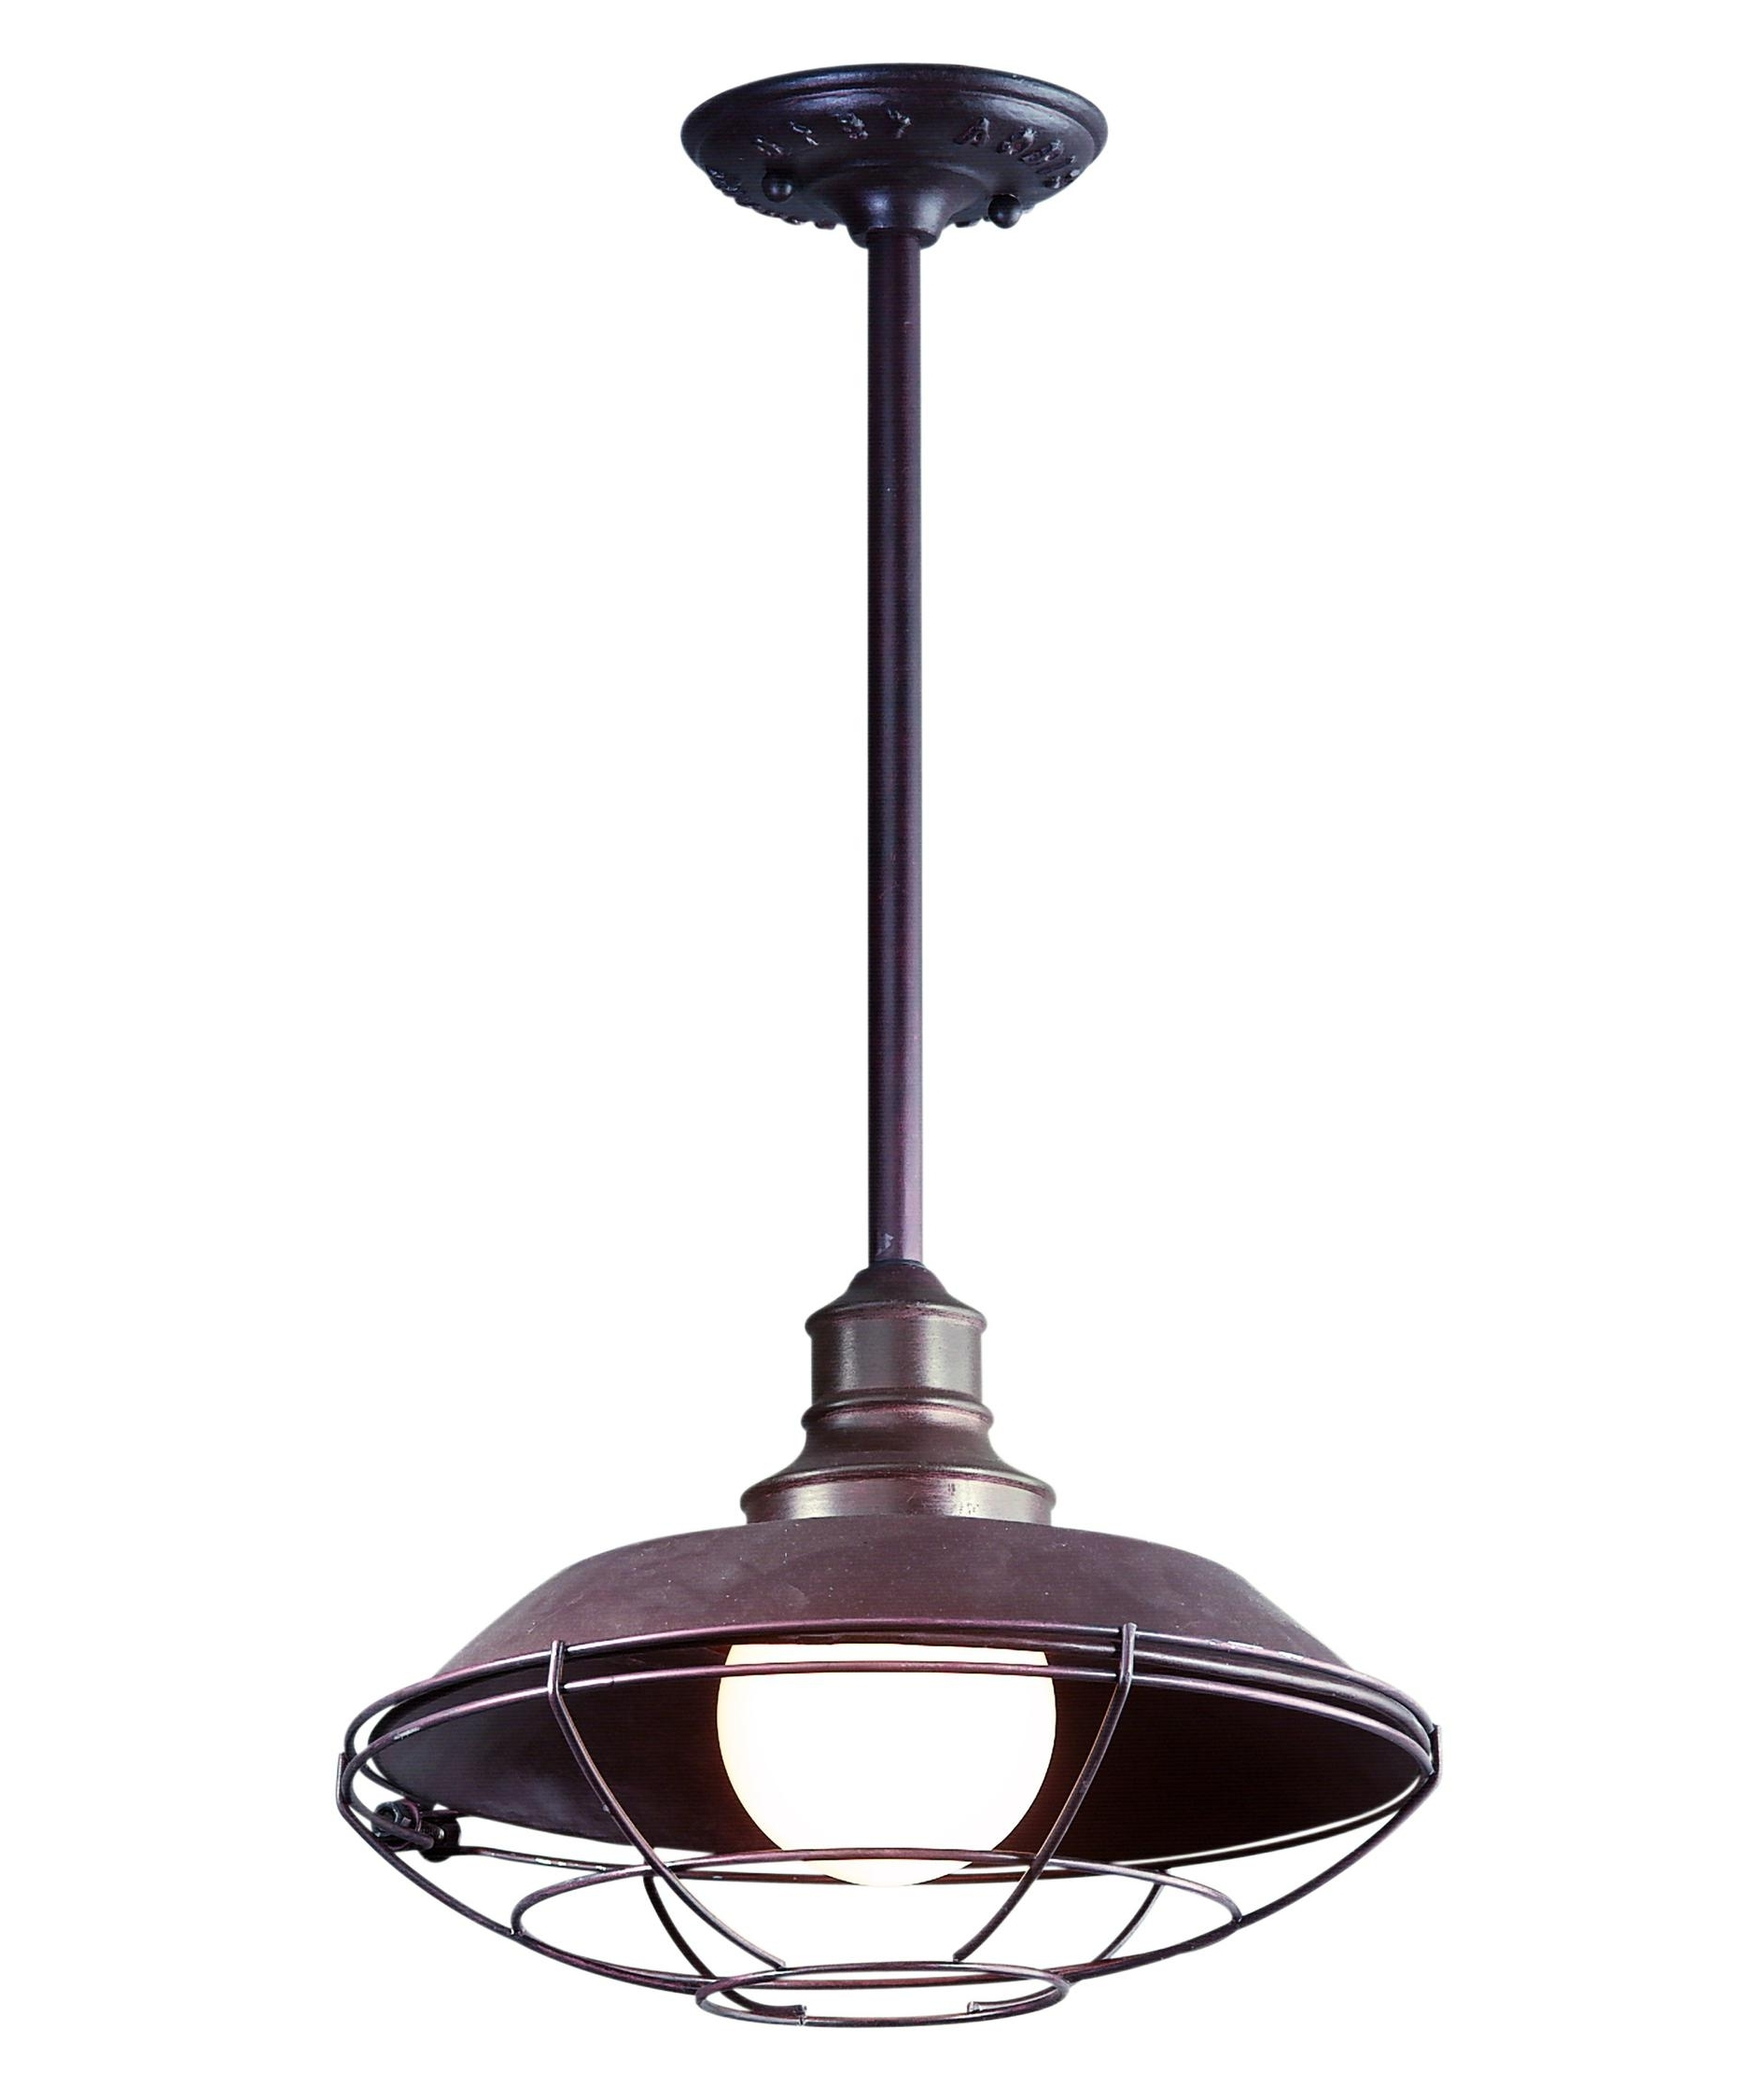 Widely Used Outdoor Hanging Lamps At Amazon Within Troy Lighting F9273 Circa 1910 12 Inch Wide 1 Light Outdoor Hanging (View 15 of 20)